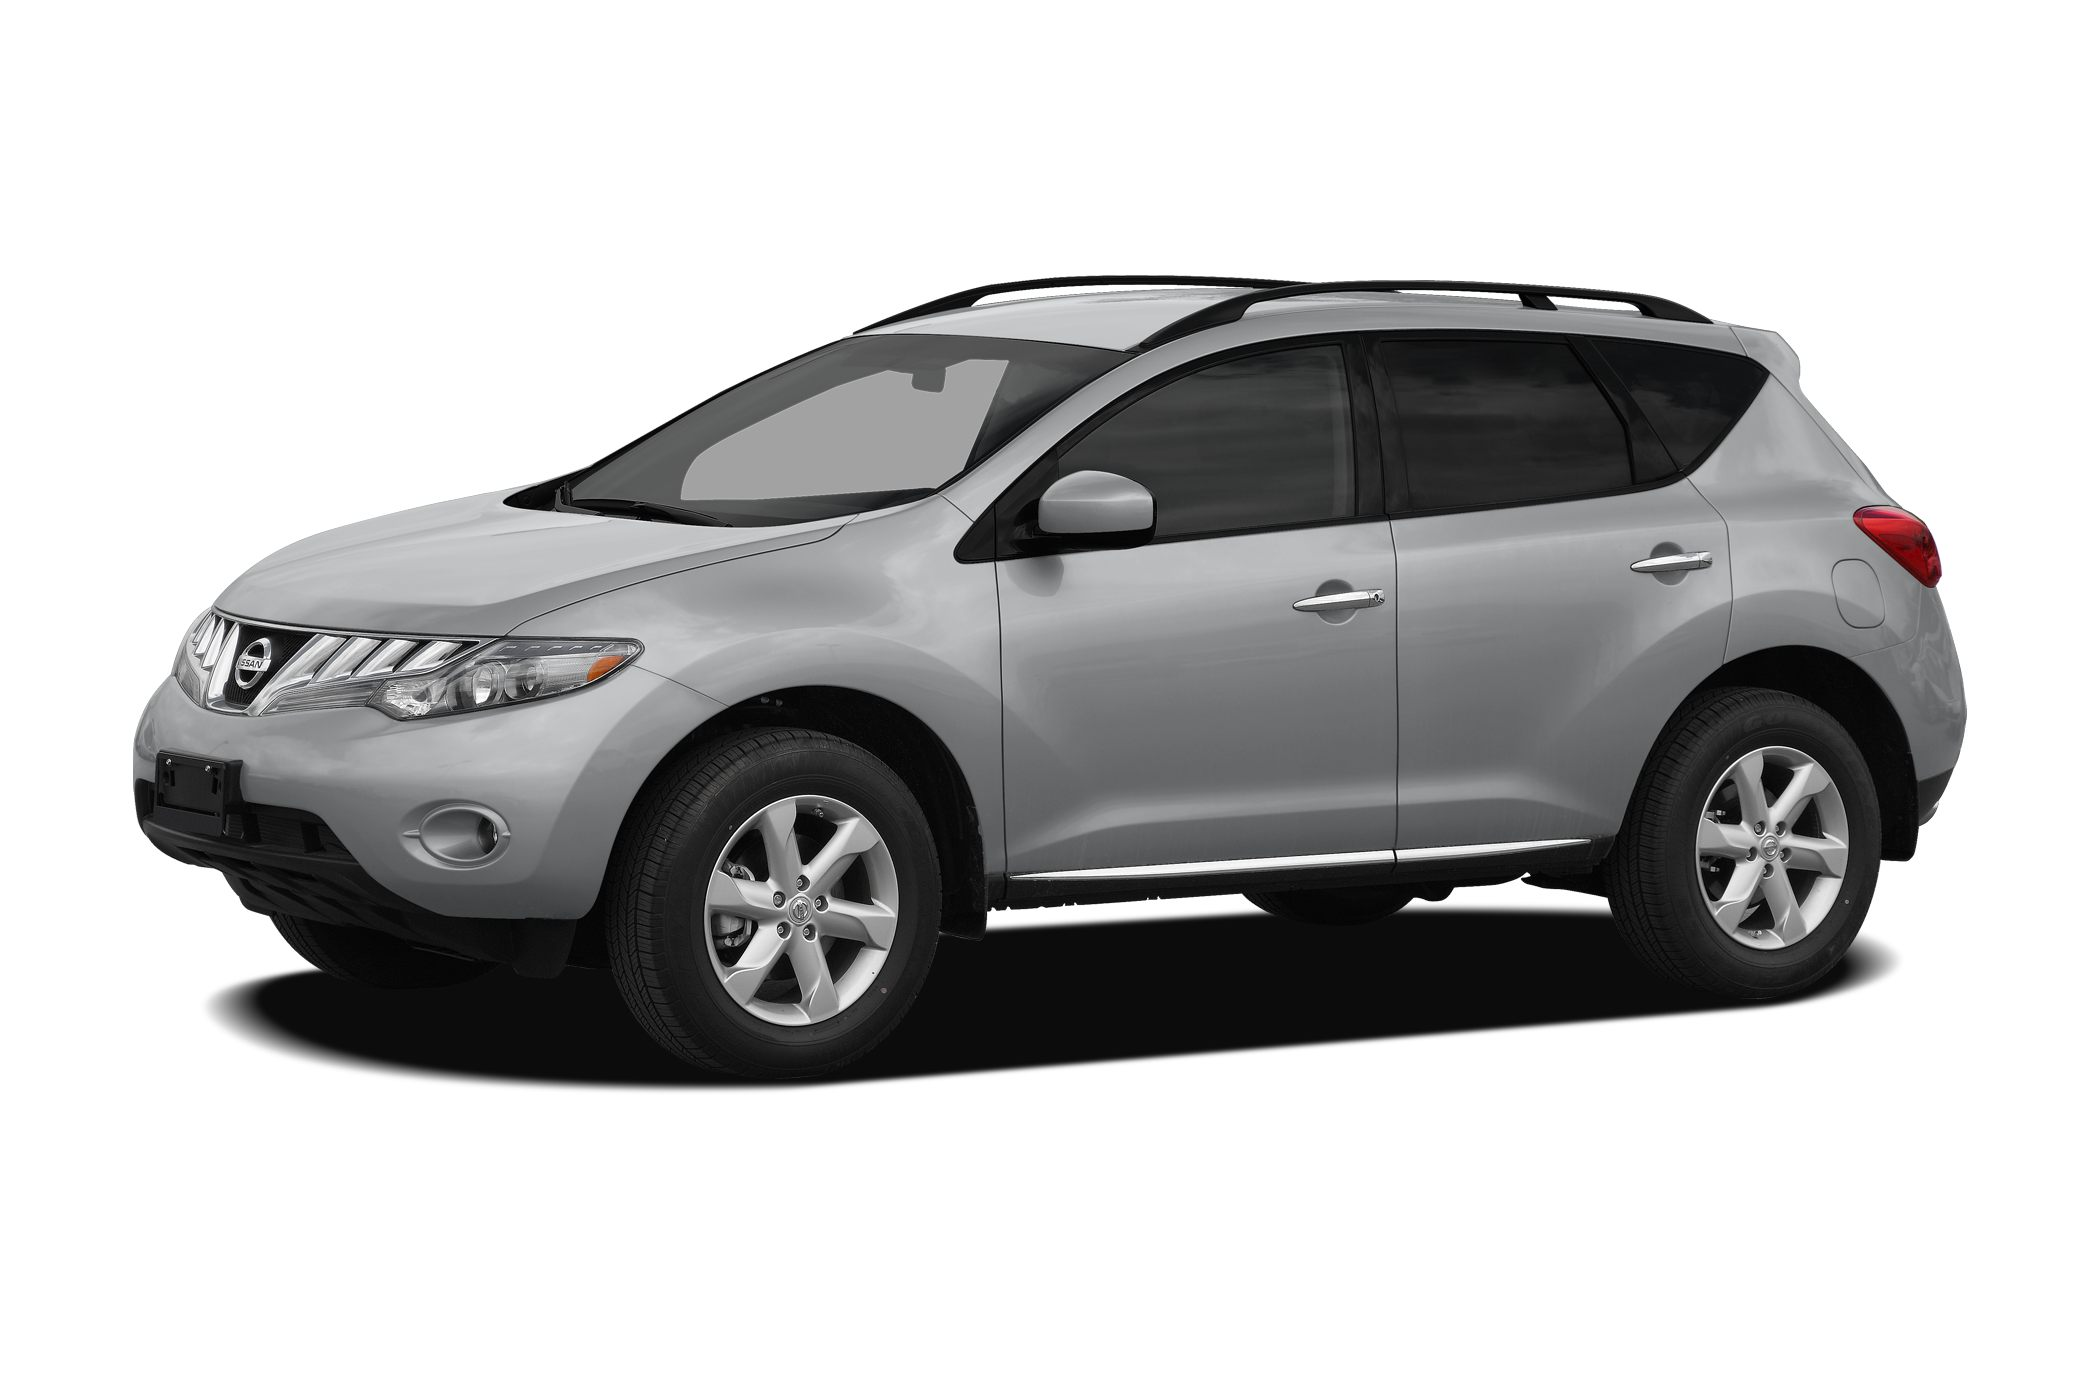 2009 Nissan Murano LE SUV for sale in Sedalia for $17,989 with 71,490 miles.